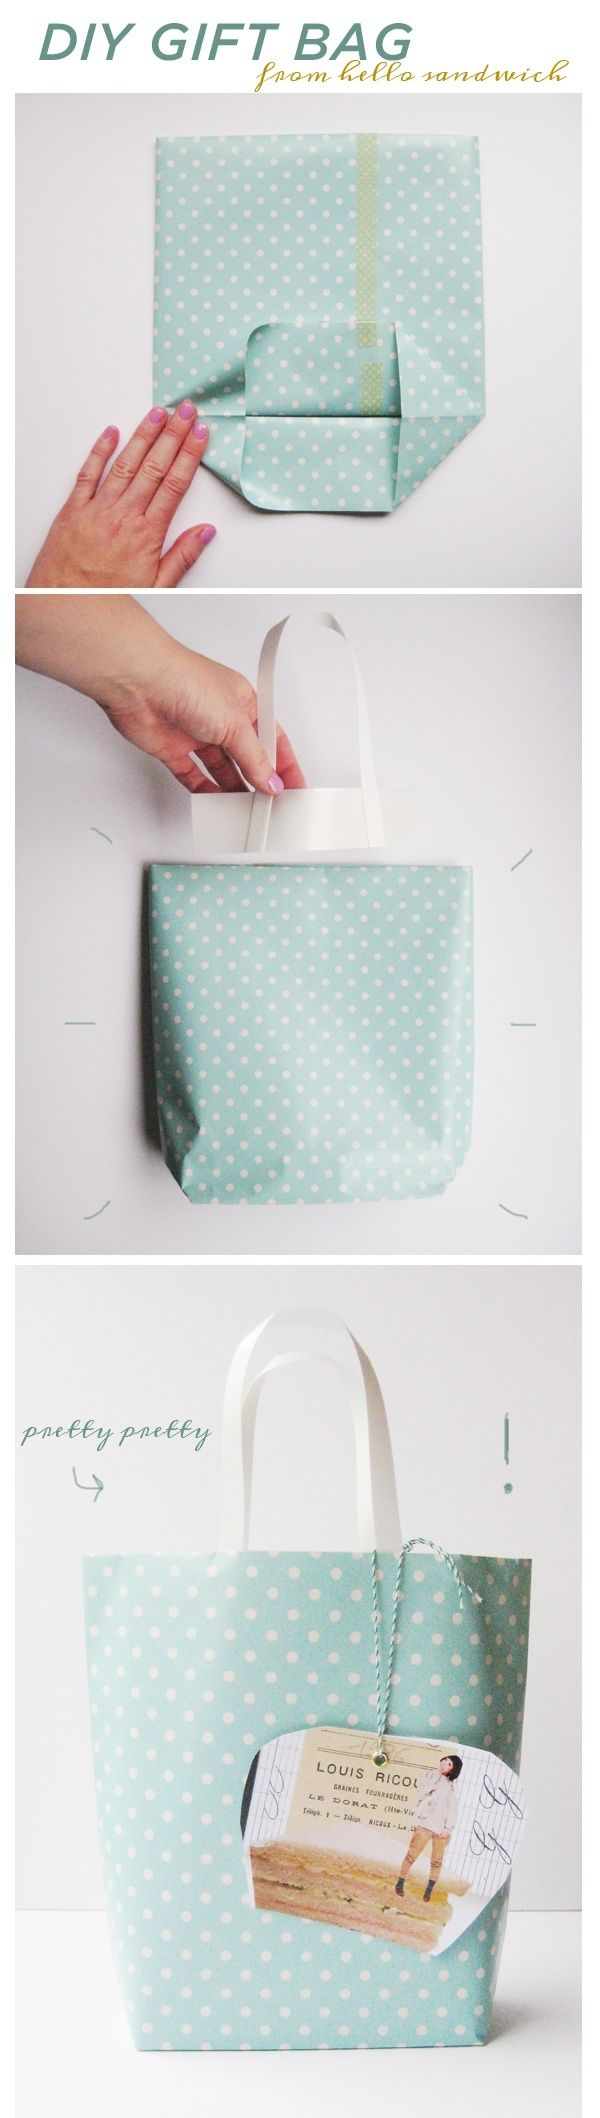 Diy gift bag diy crafts presents home made easy crafts craft idea diy gift bag diy crafts presents home made easy crafts craft idea crafts ideas diy ideas diy crafts diy idea do it yourself diy projects gift wrap solutioingenieria Choice Image